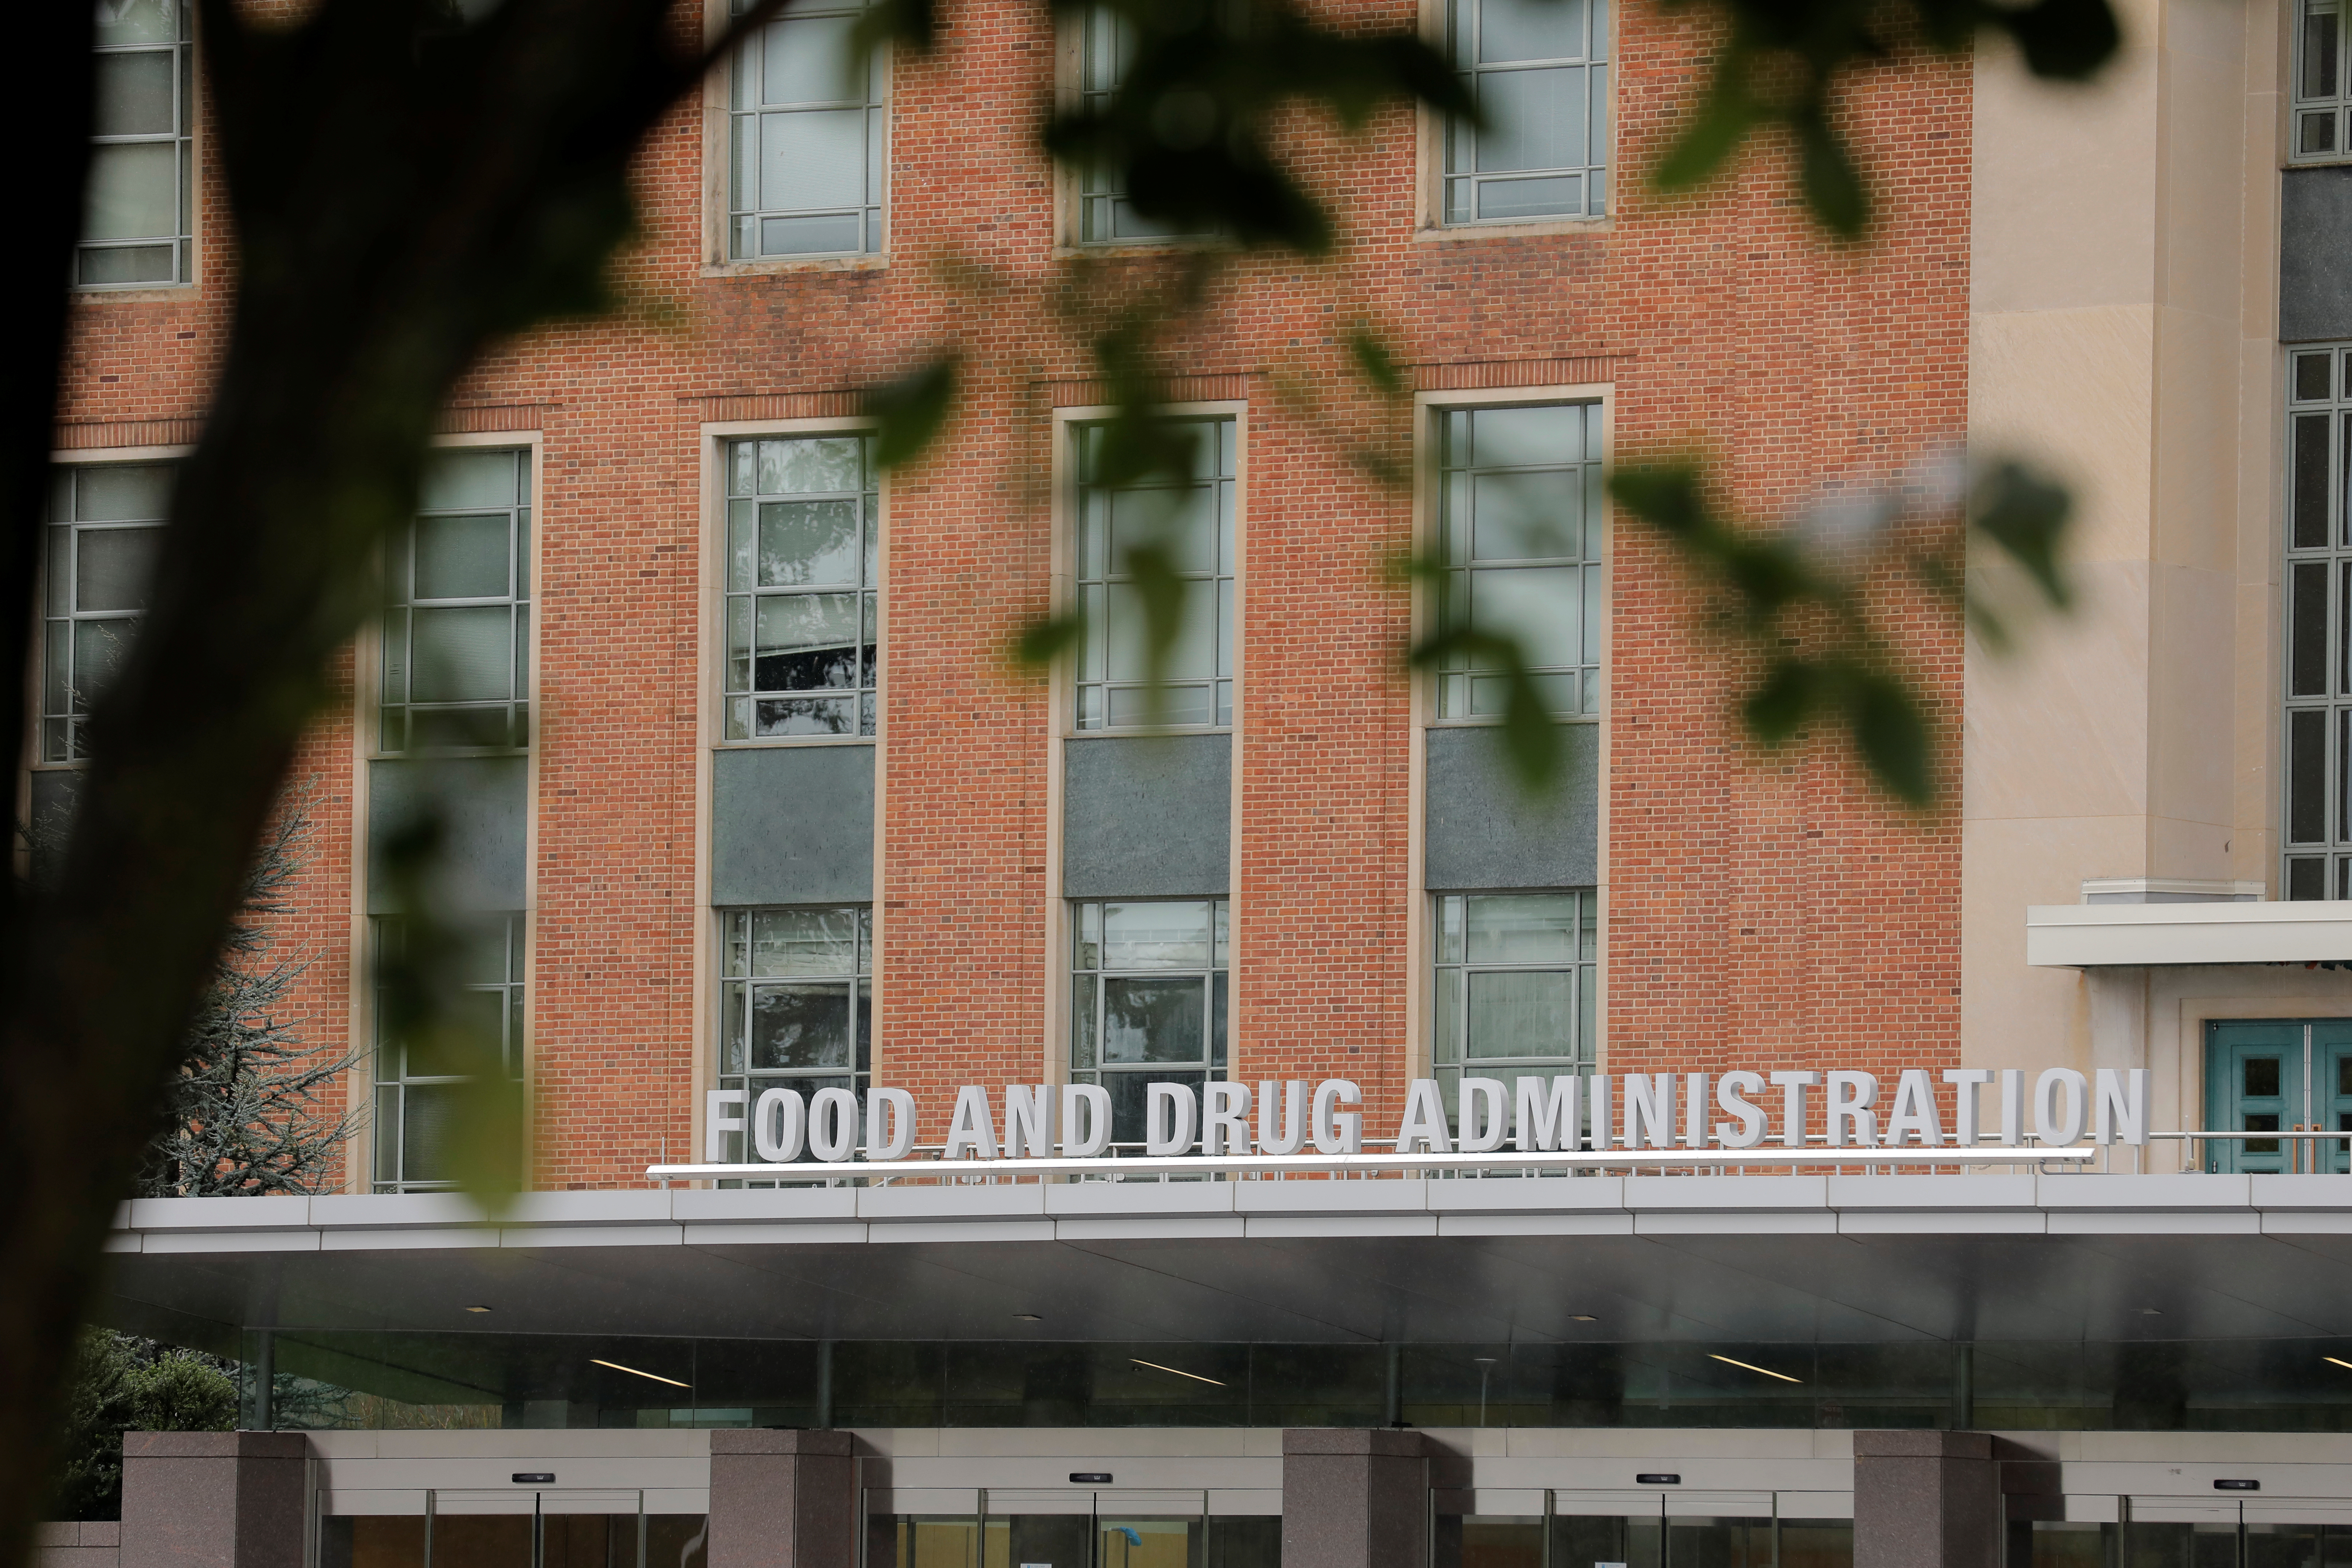 Signage is seen outside of the Food and Drug Administration (FDA) headquarters in White Oak, Maryland, U.S., August 29, 2020. REUTERS/Andrew Kelly